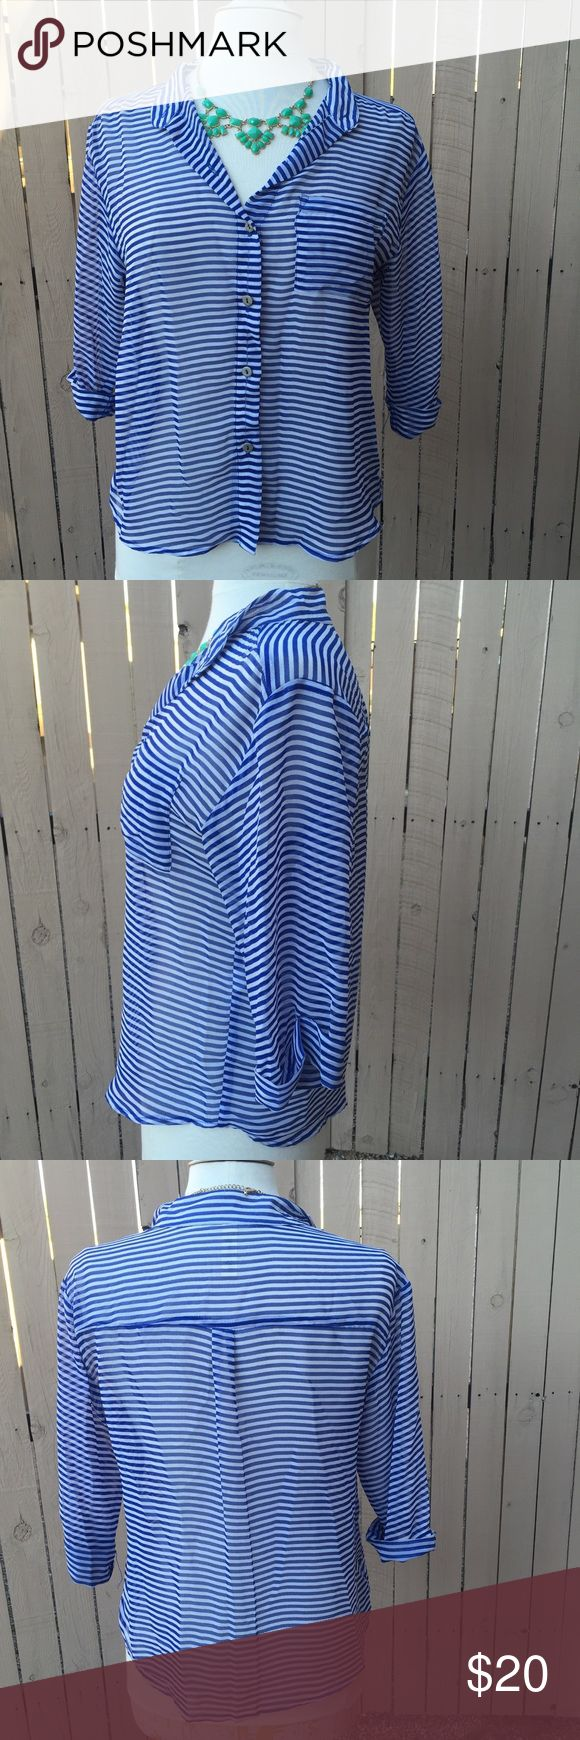 4th of July Blue and White Striped Blouse Blouse is semi sheer- I wear a bra usually underneath it but when I've work it to work I do put a white Cami under. Buttons down. White and blue stripes. See me with any questions ! Francesca's Collections Tops Blouses